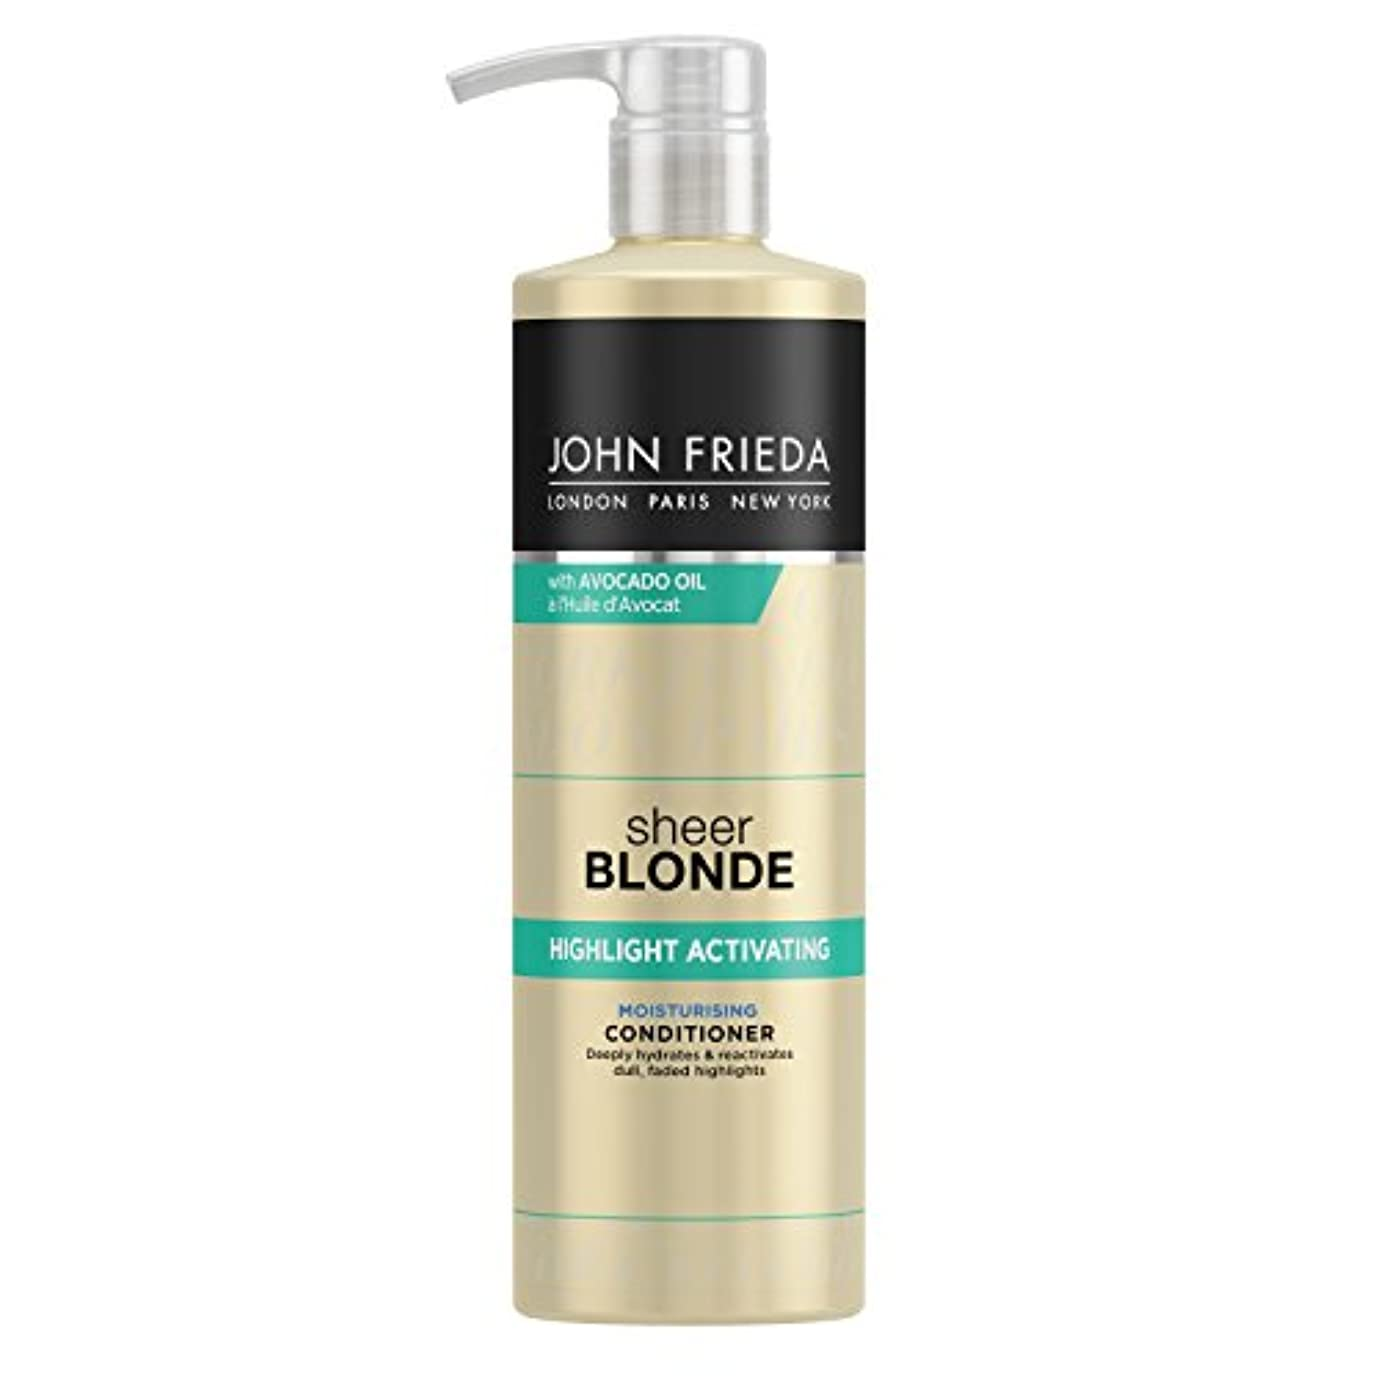 参加者紛争兄弟愛John Frieda Sheer Blonde Highlight Activating Moisturising Conditioner for Lighter Shades 500ml